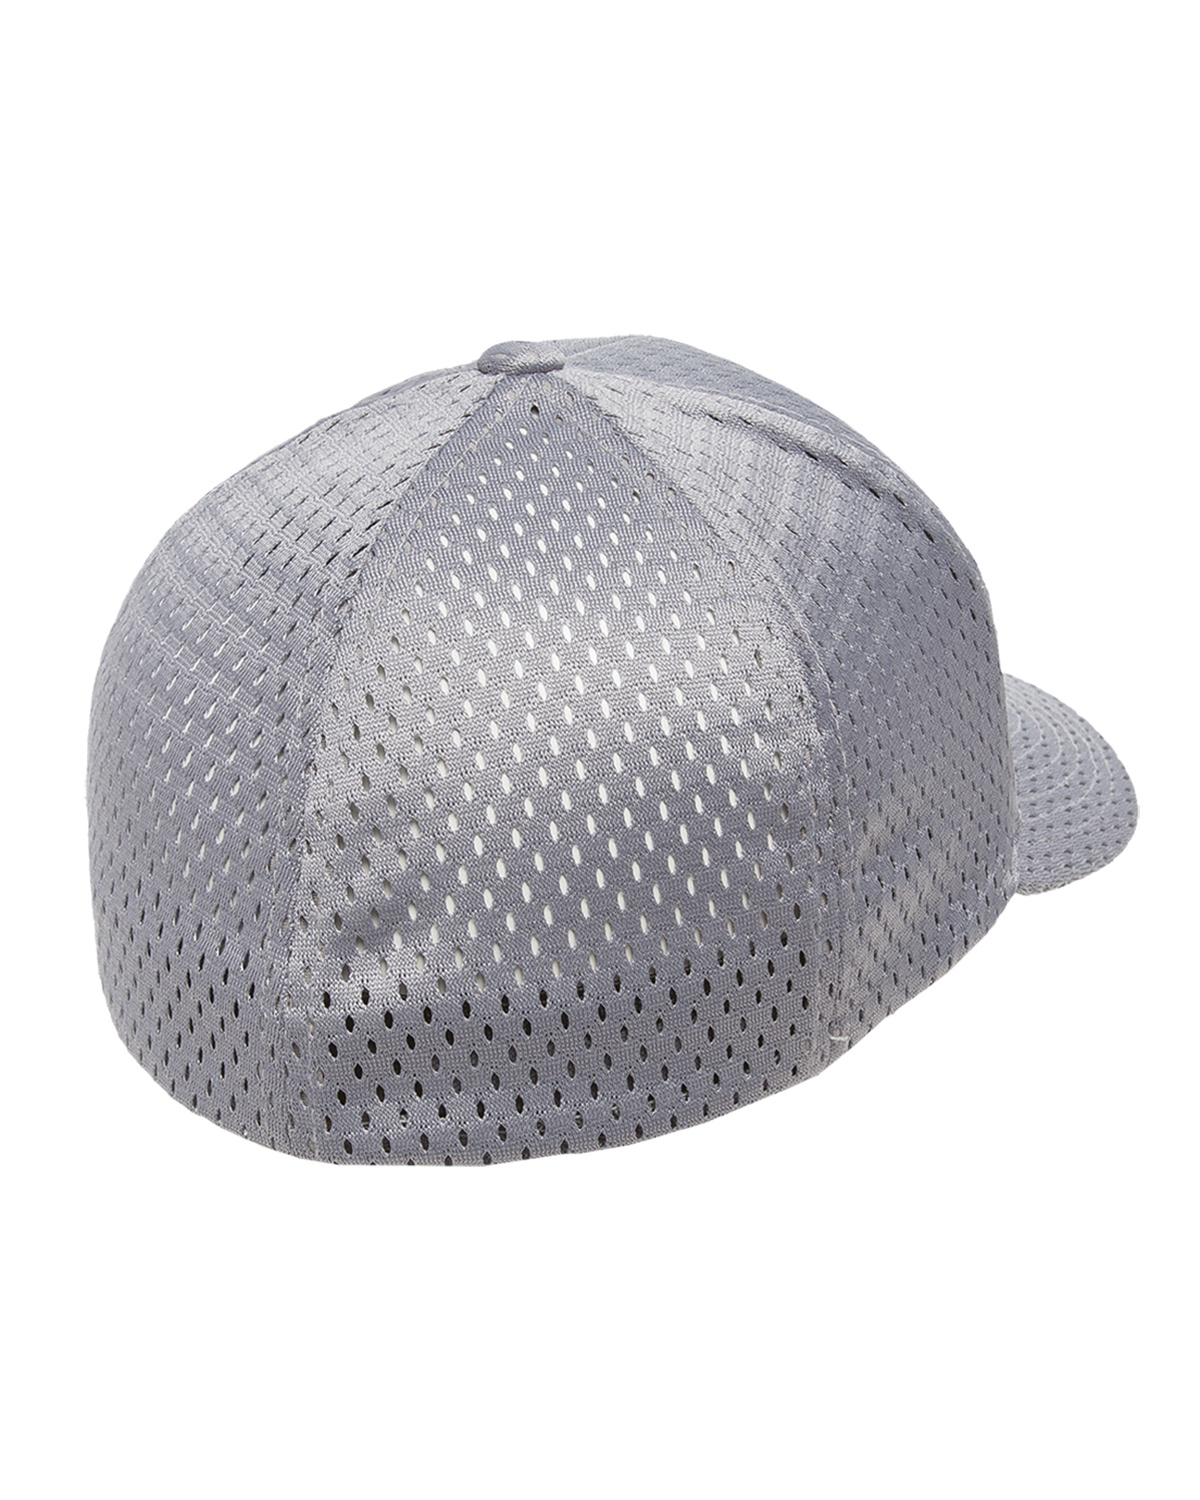 'Flexfit 6777 Adult Polyester Spandex Athletic Mesh Cap'